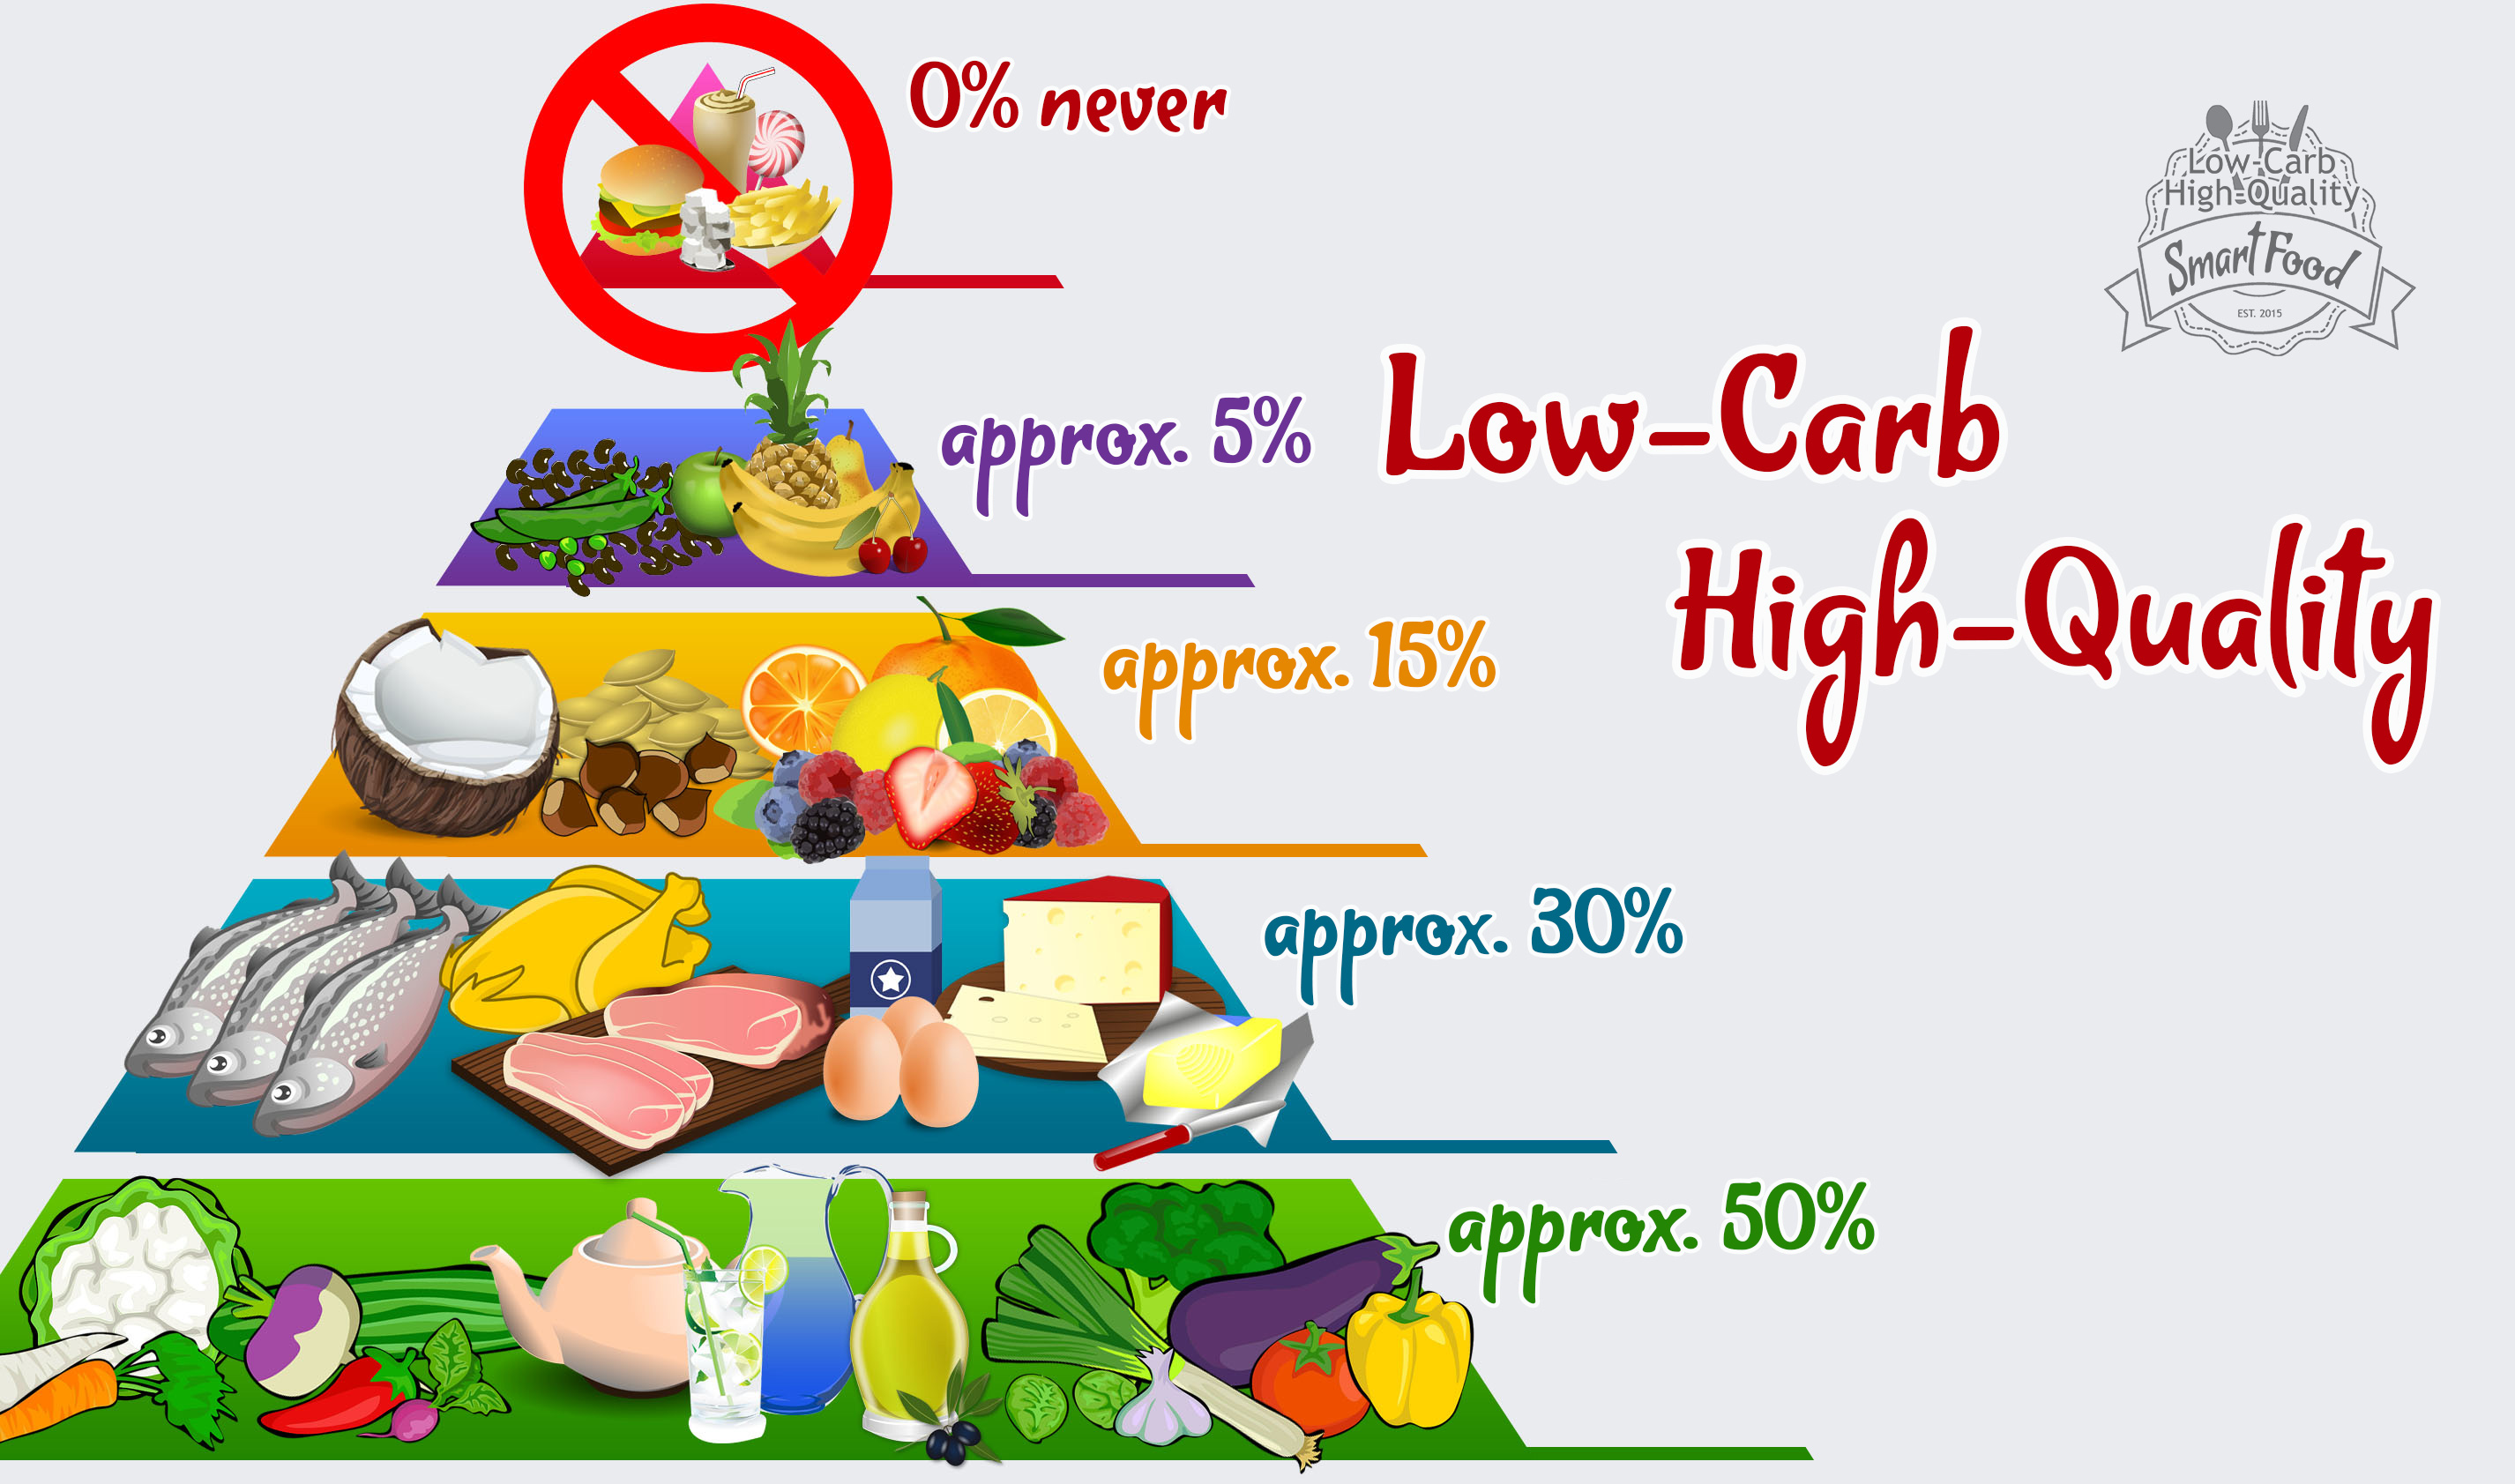 Low-Carb High-Quality